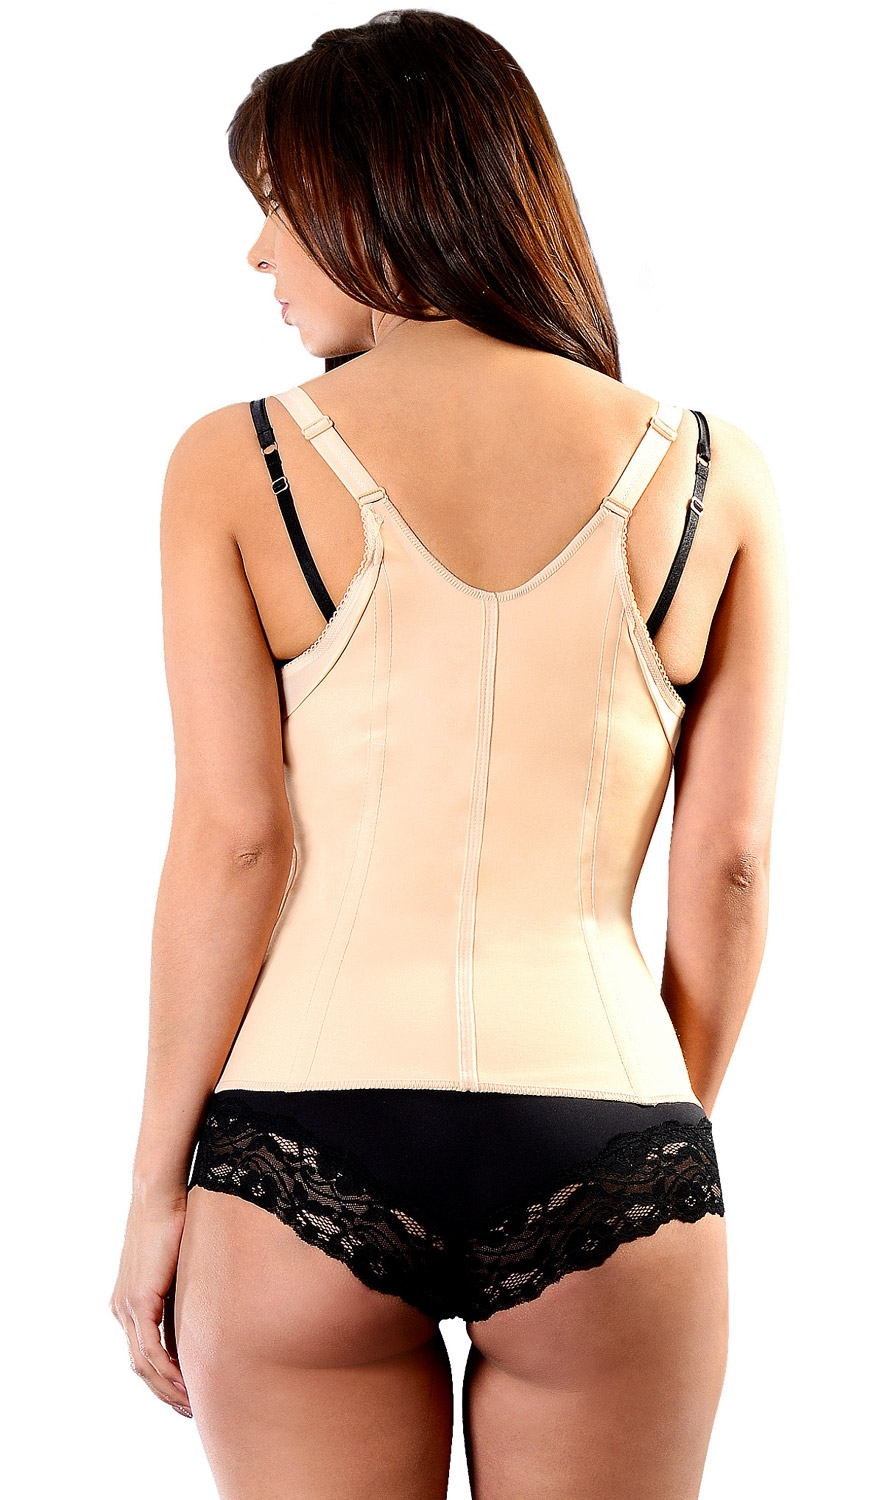 a897d9ec8c182 Shapewear - Daily Slimming Vest Breathable Invisible